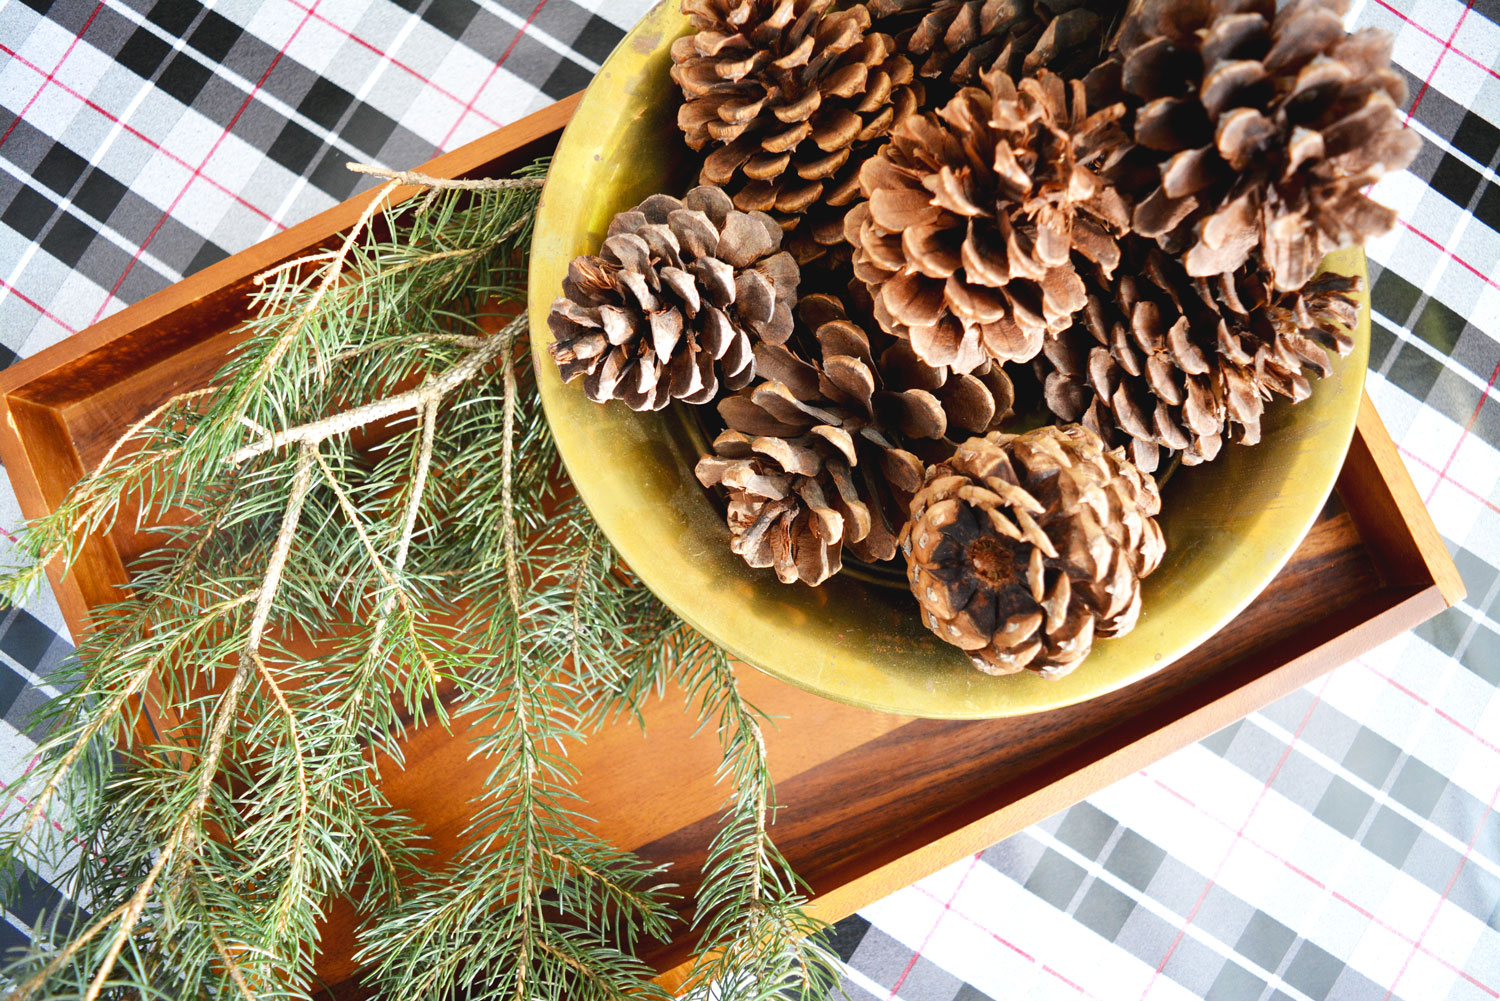 Add a sprig of fresh greenery to a simple wooden tray for some casual Christmas style.